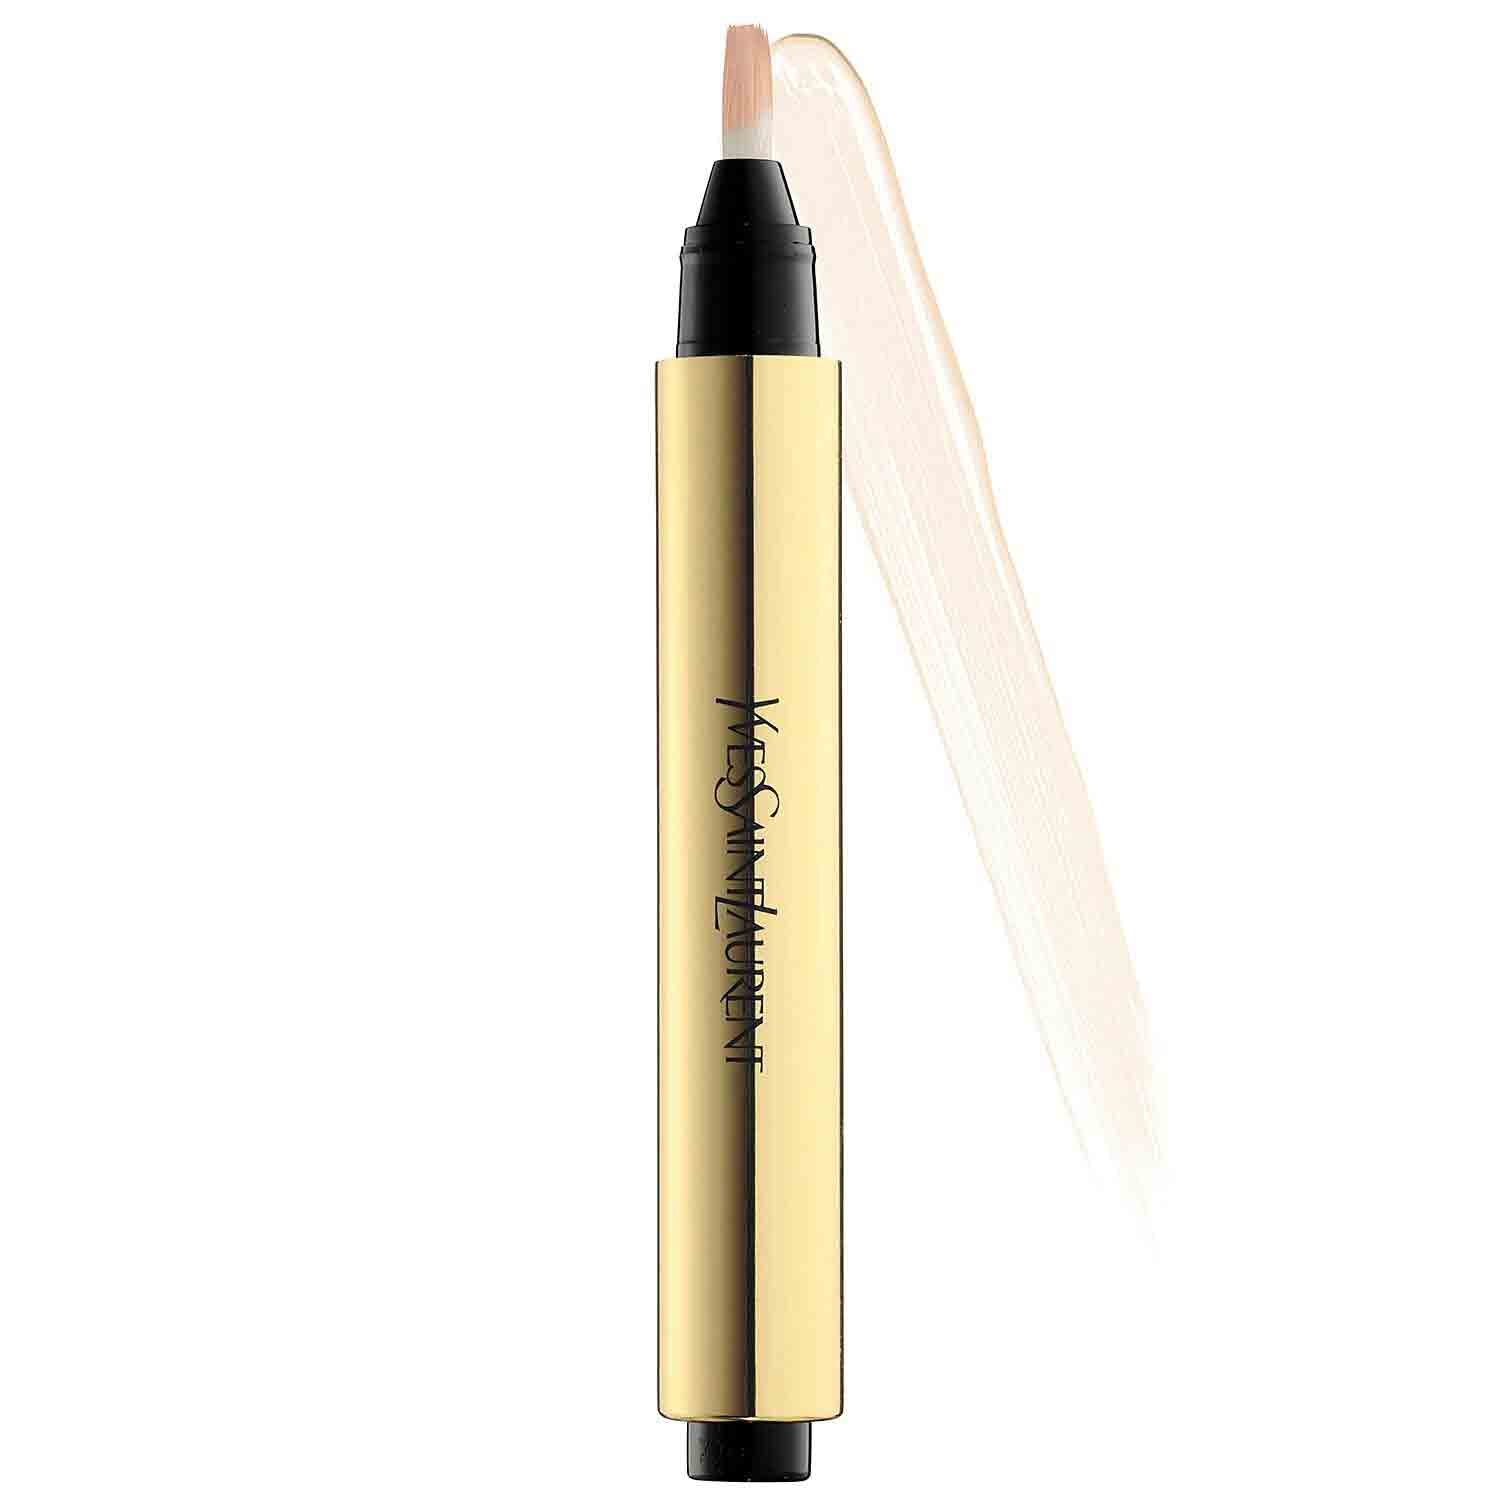 042920-touche-eclat-radiance-perfecting-pen-ivory-embed.jpg